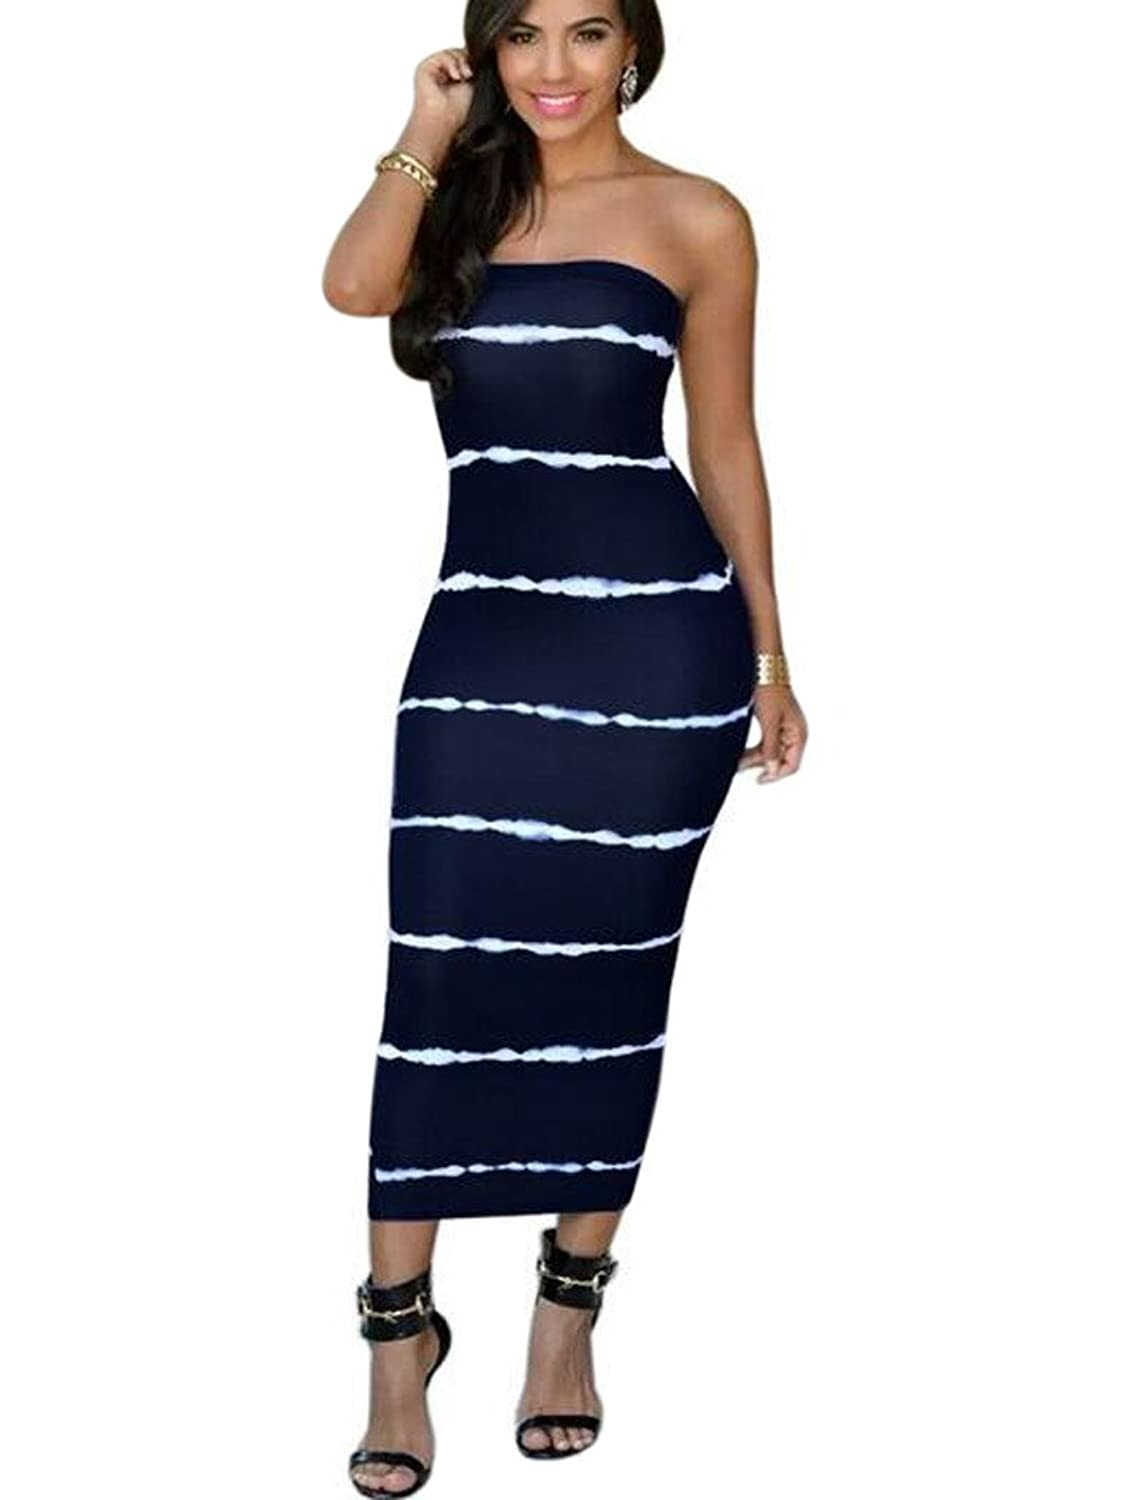 Aro Lora Women's Strapless Bodycon Stripe Bandage Party Midi Dress